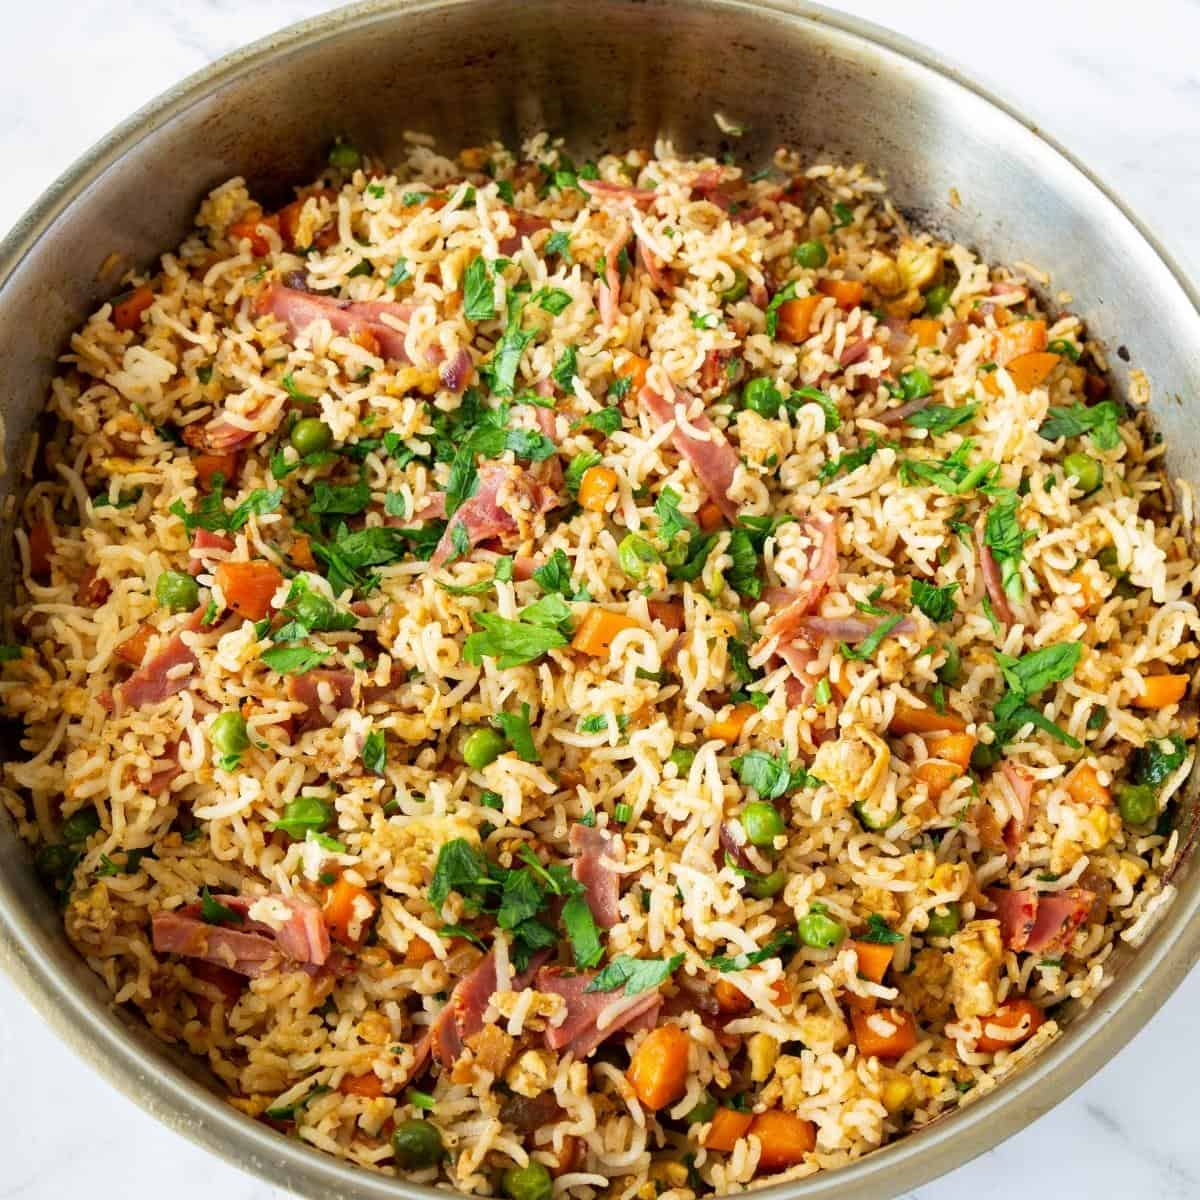 A skillet with fried rice.